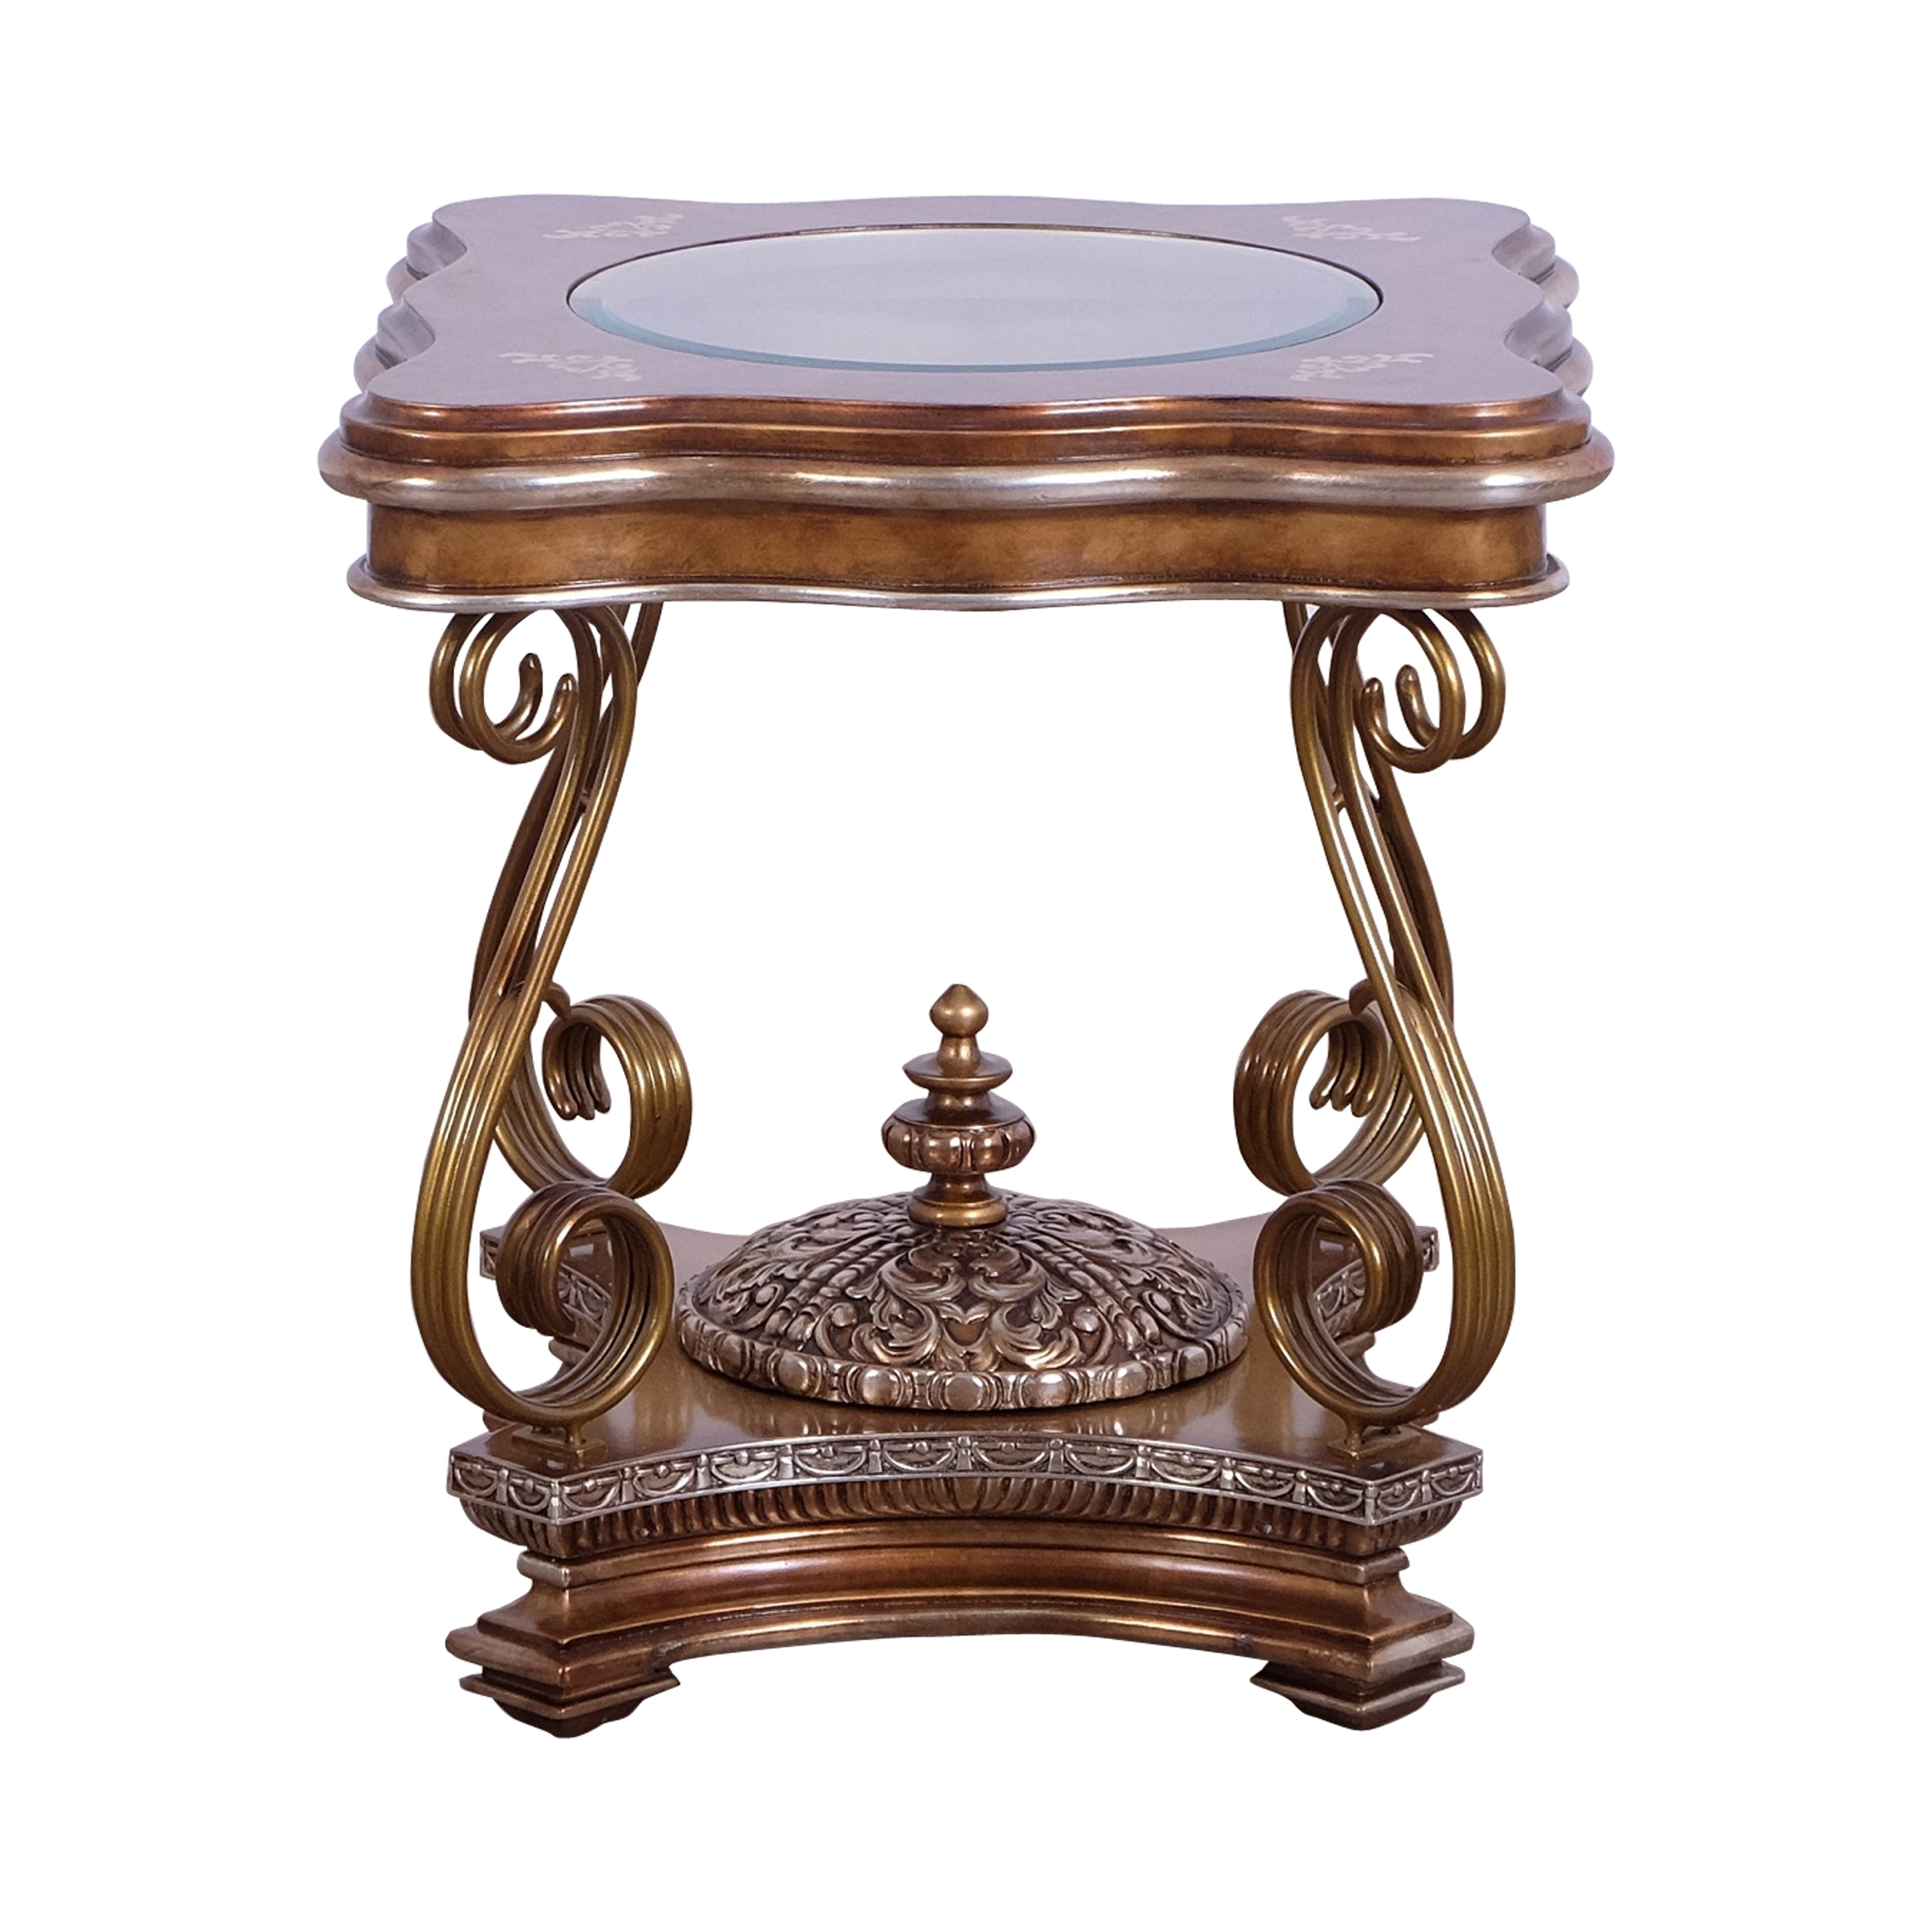 Wooden End Table With Scrolled Metal Legs And Finial Center Multicolor